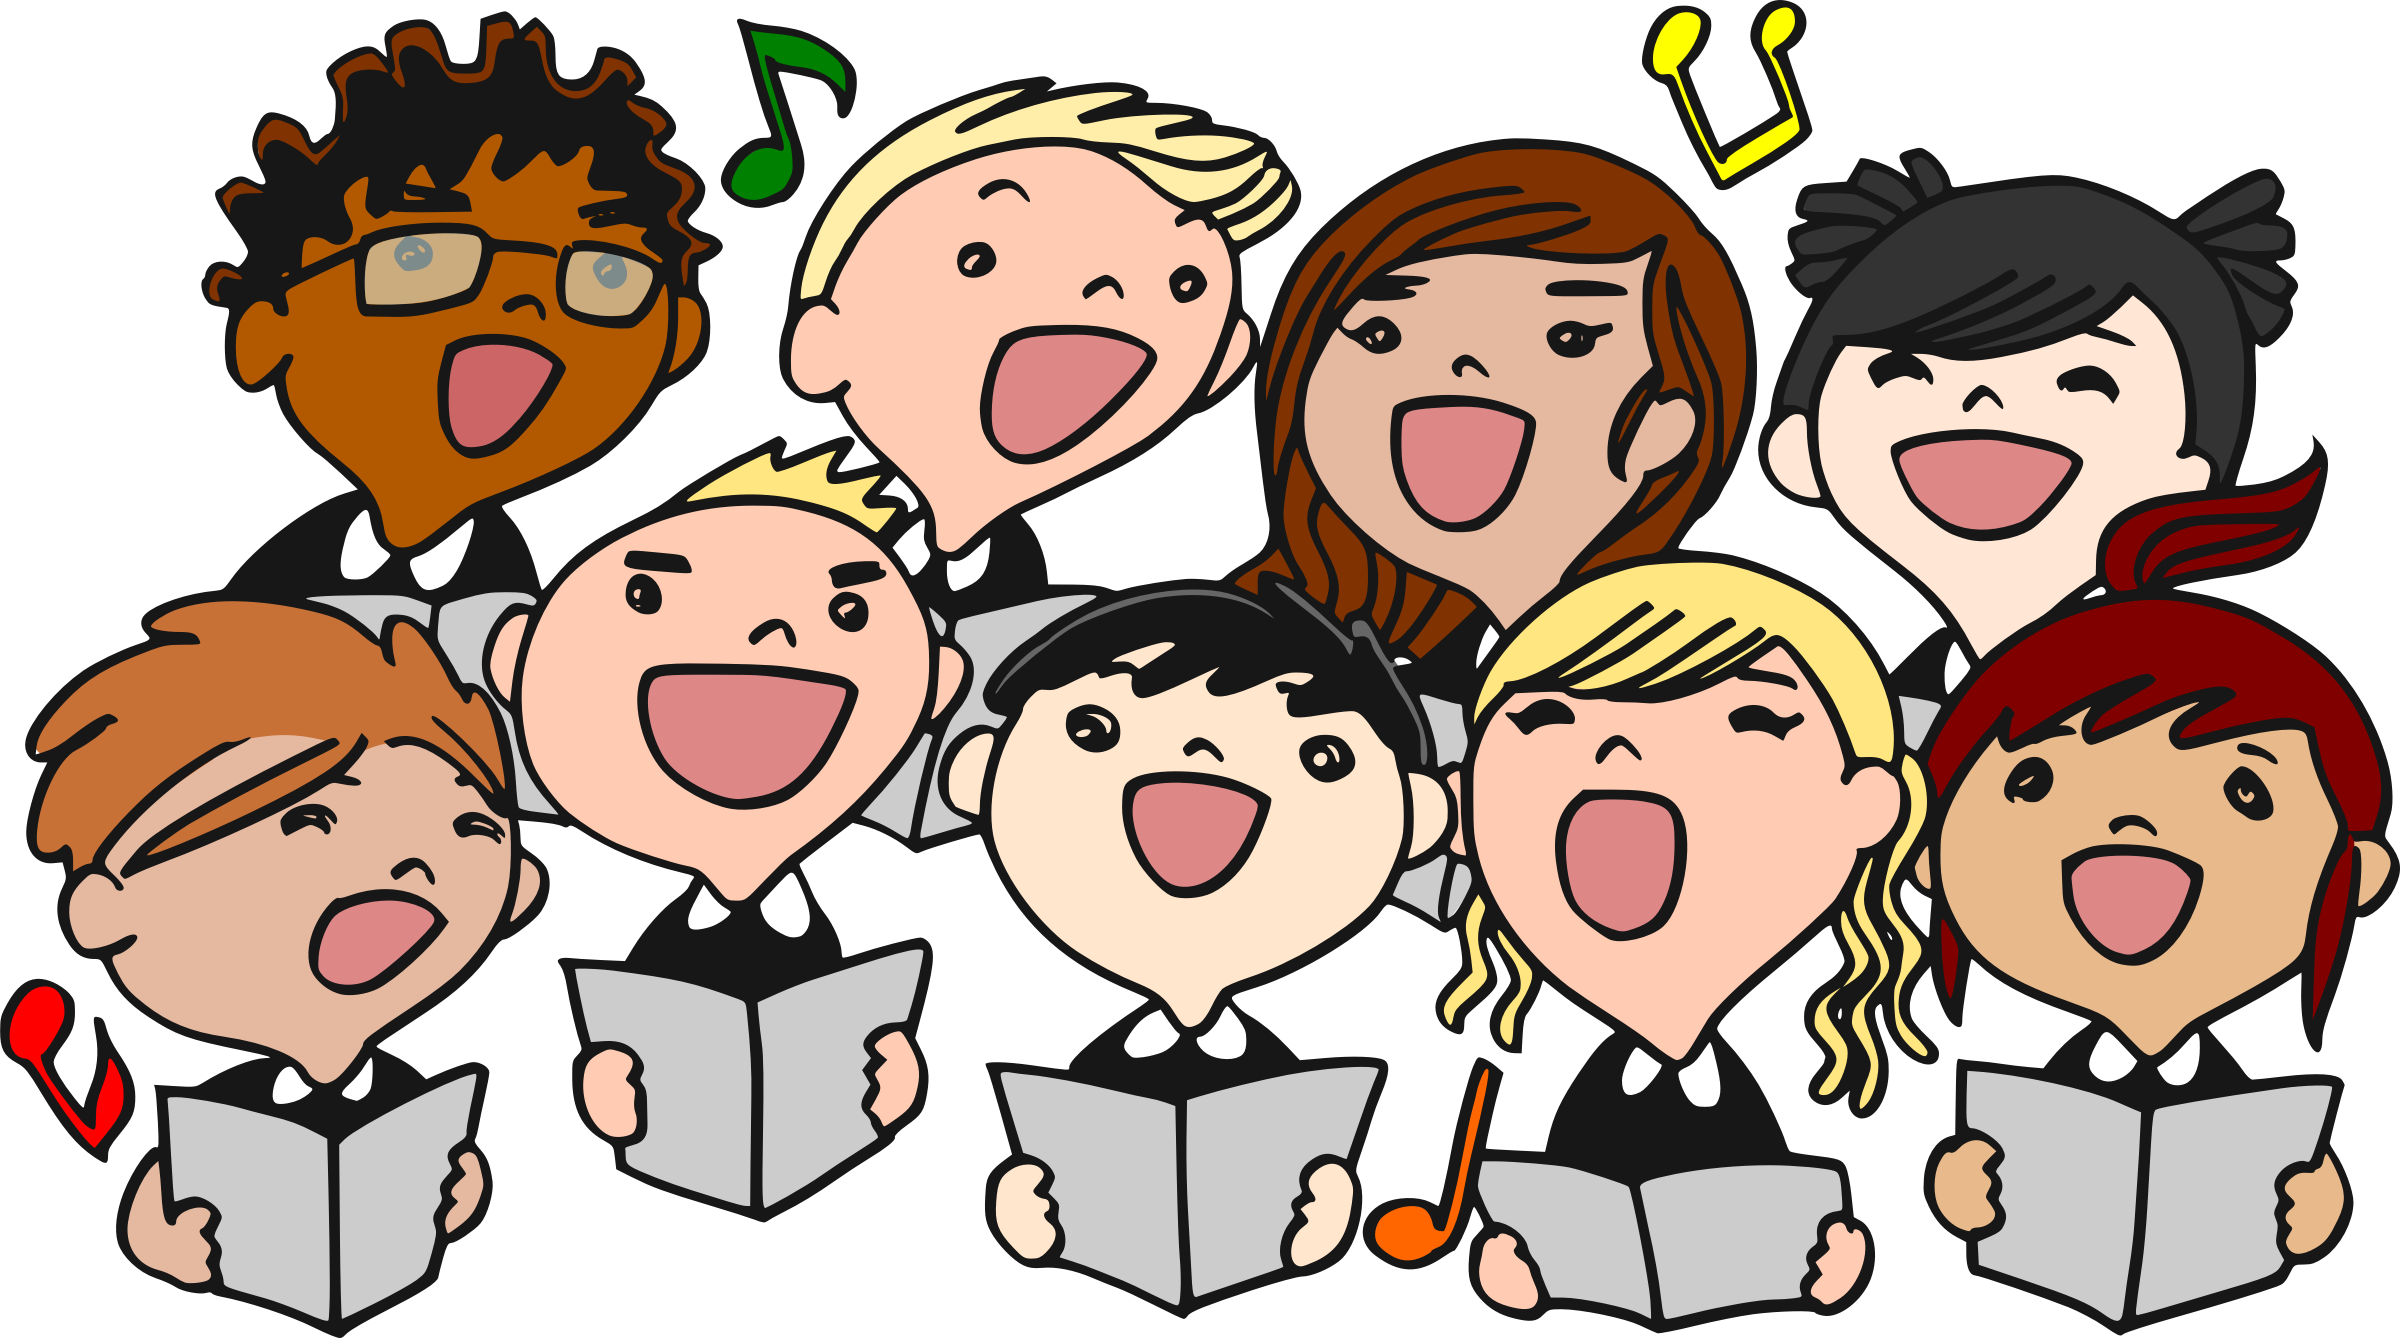 freeuse download Chorus clipart vocal music. Singer kid band pencil.